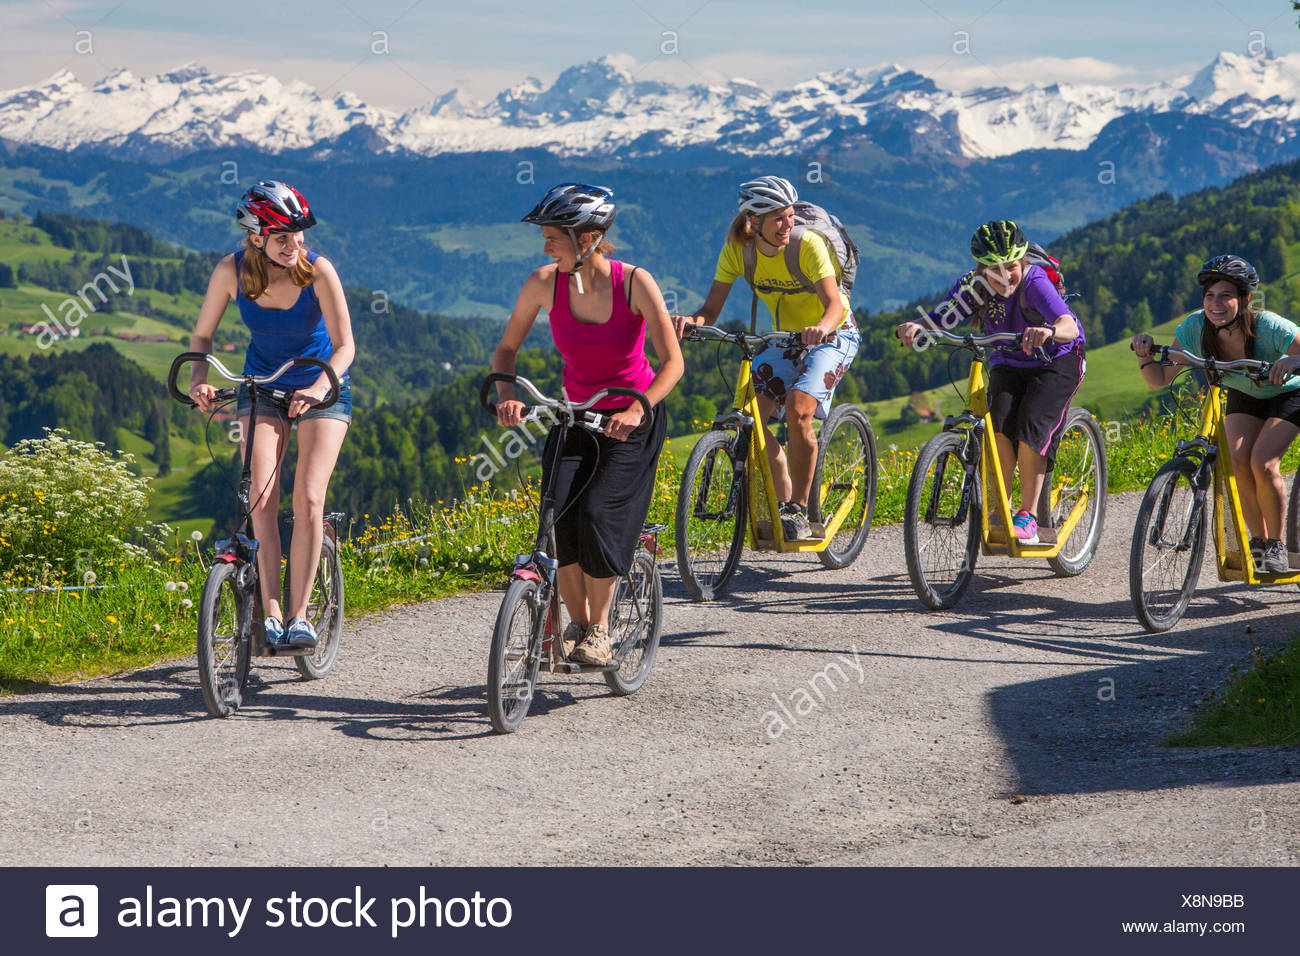 Zurich uplands, scooter, departure, Hörnli, mountain, mountains, canton Zurich, play, game, plays, games, bicycle, bicycles, bik - Stock Image